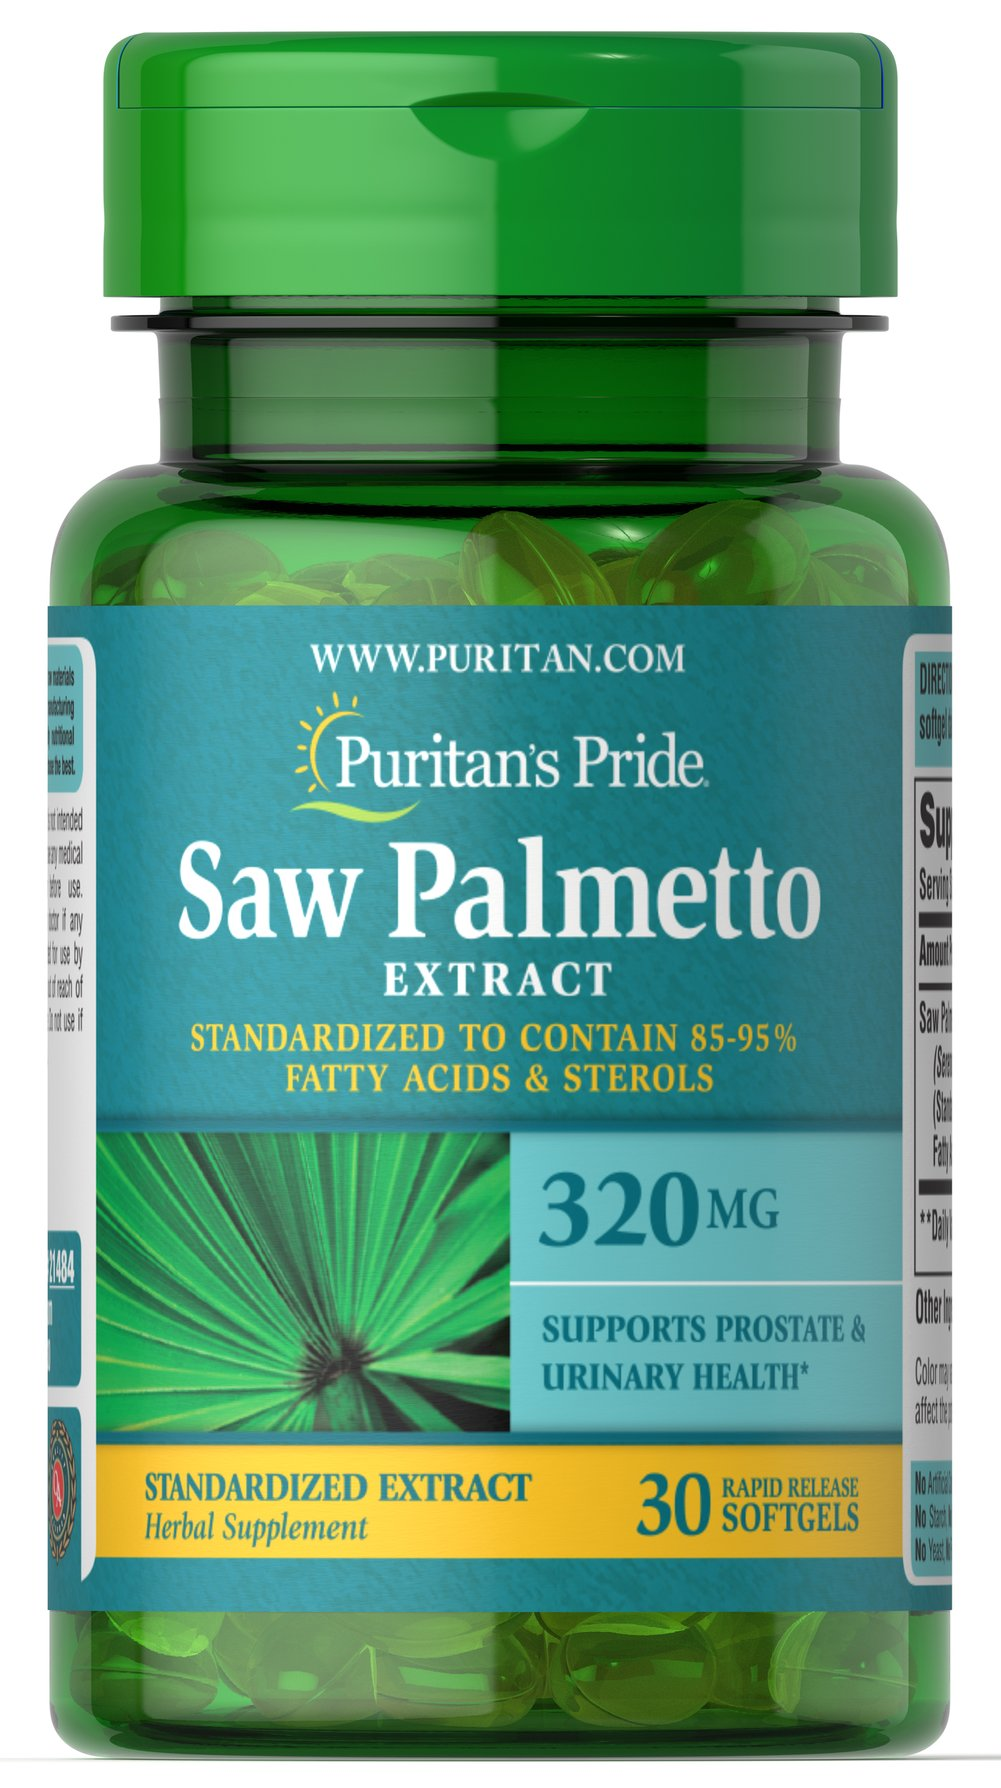 Saw Palmetto Standardized Extract 320 mg Trial Size